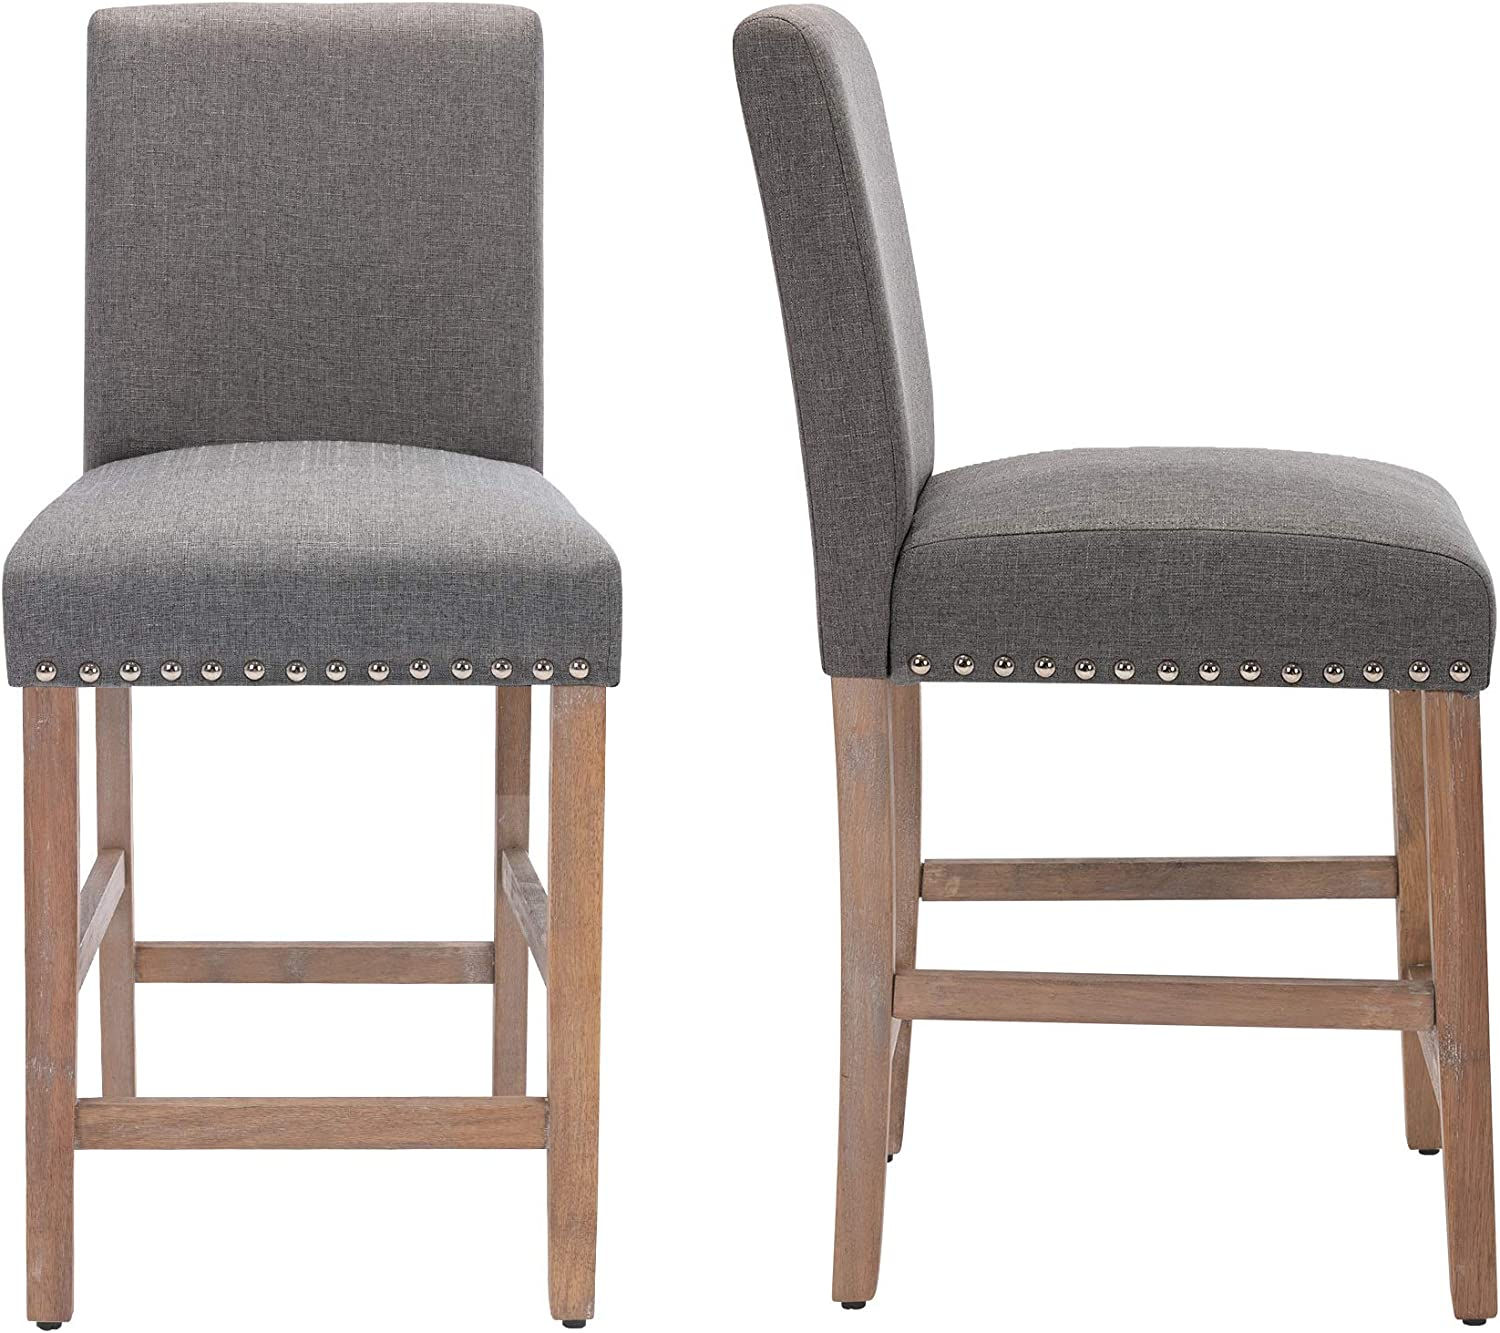 24 Inch New Recommendation York Mall Counter Stools for Dining Solid Bar Legs Wood with Room